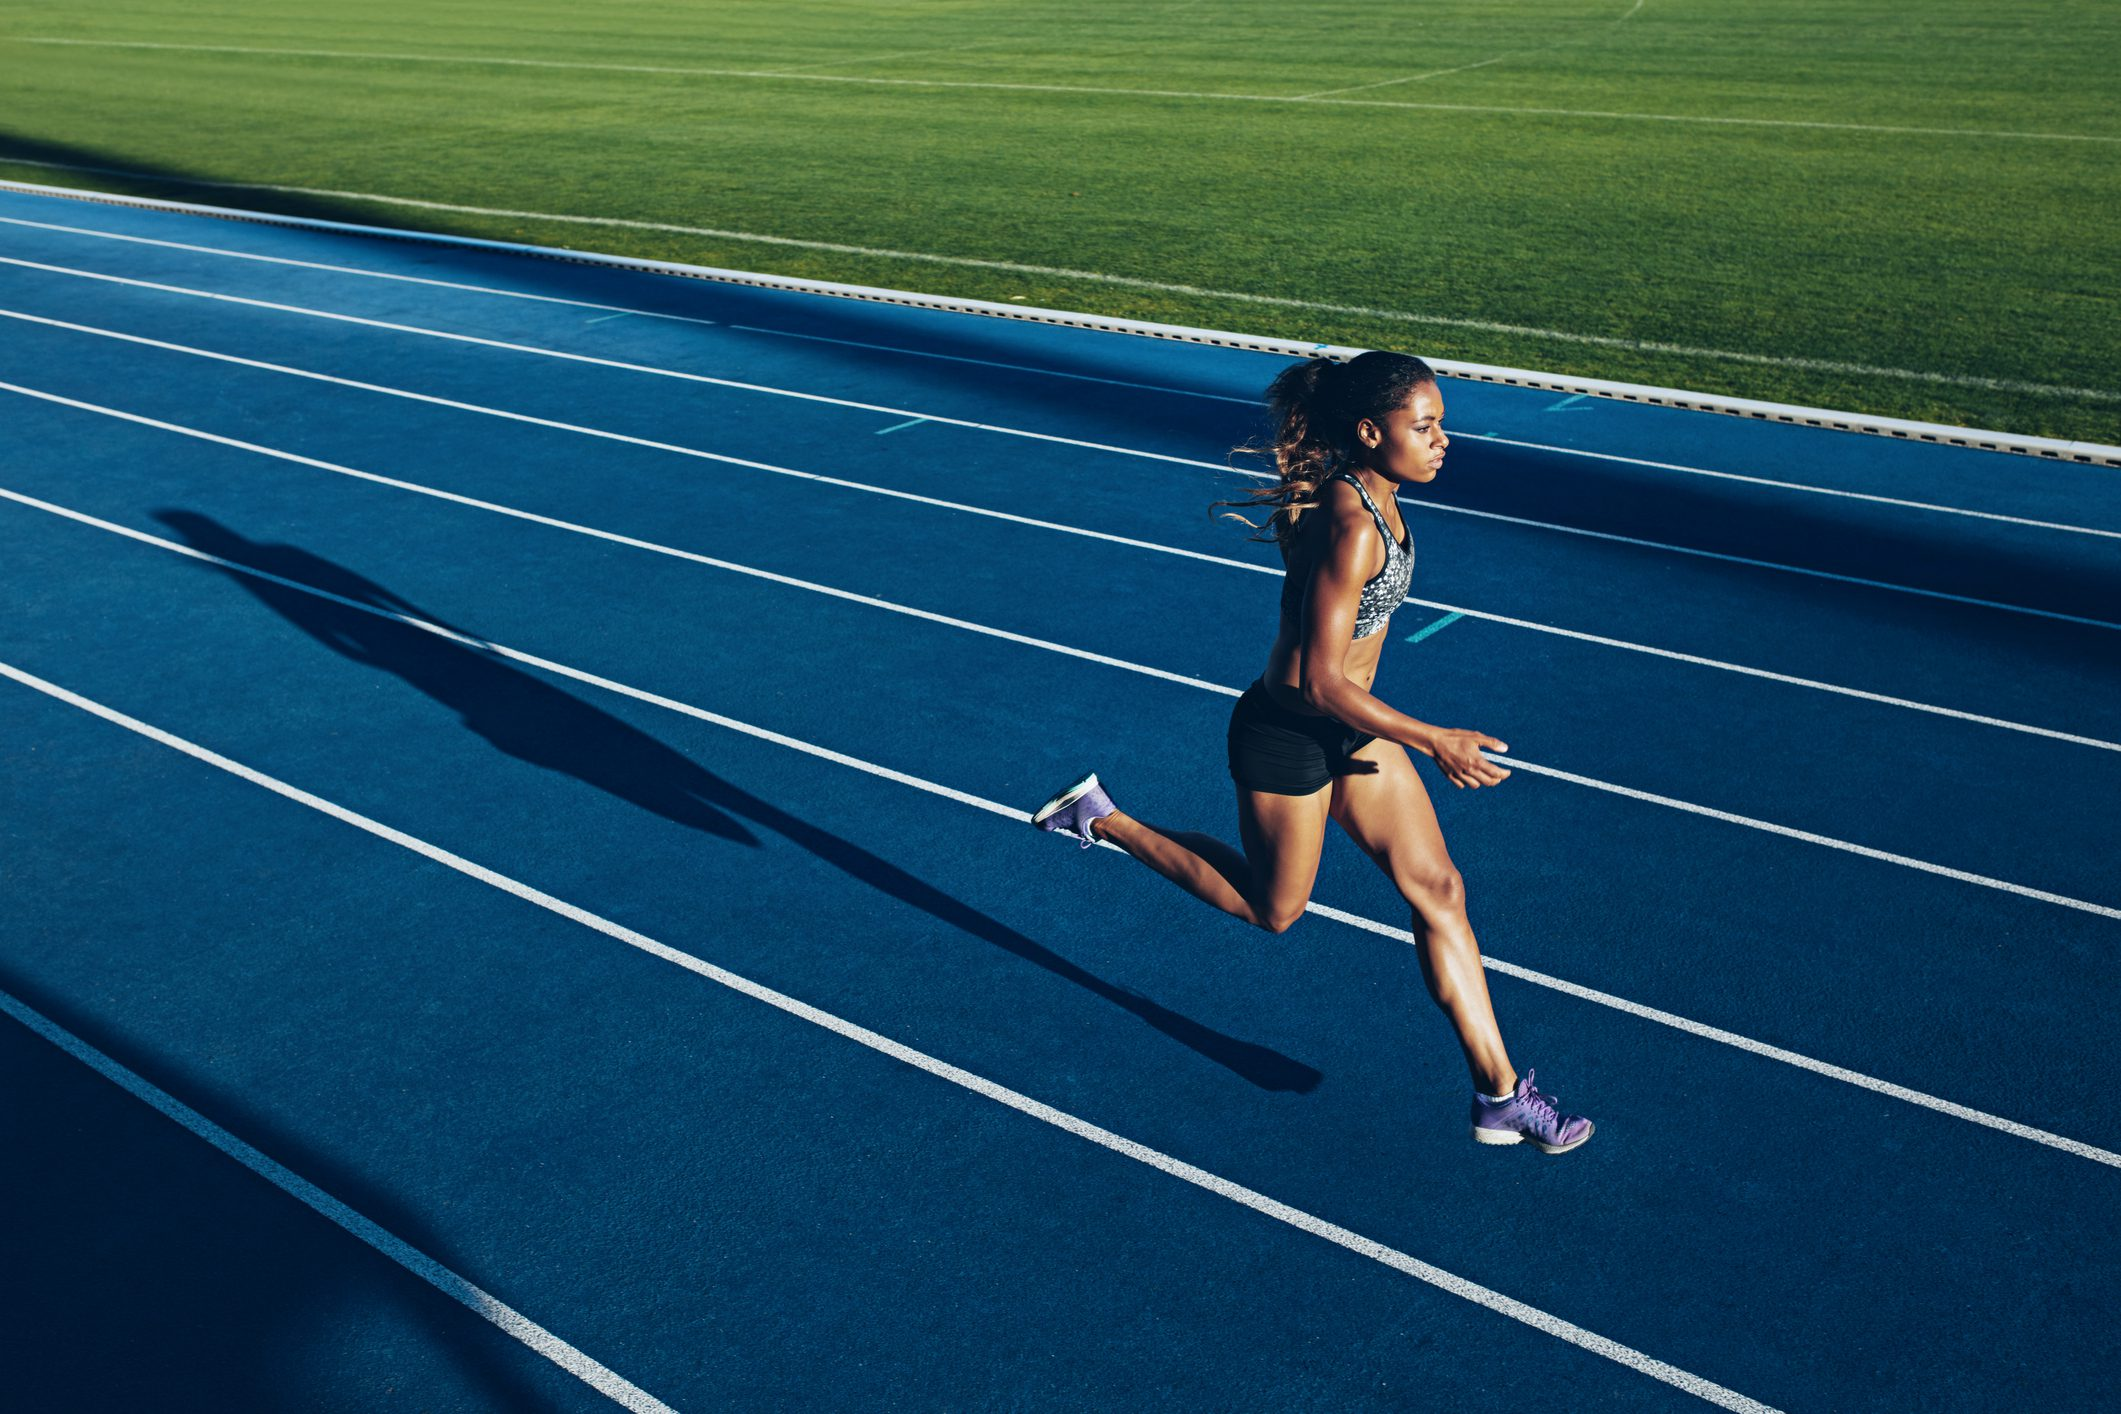 Workout Wednesday Hit the track to see improvement in